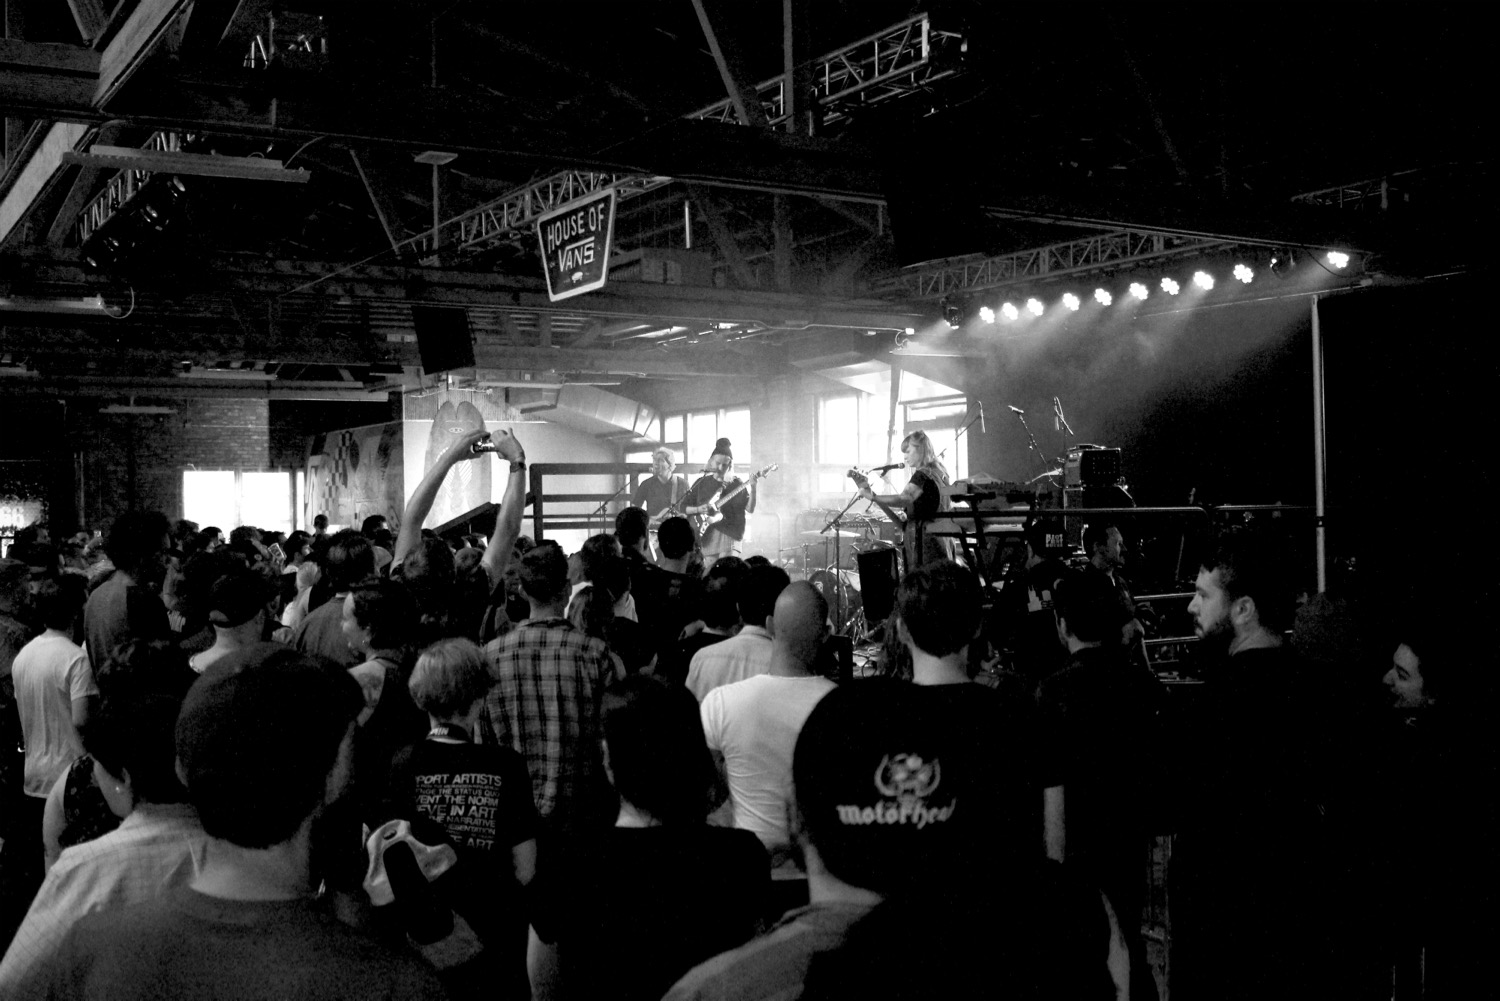 Lala Lala, House of Vans Chicago, photo by Heather Kaplan